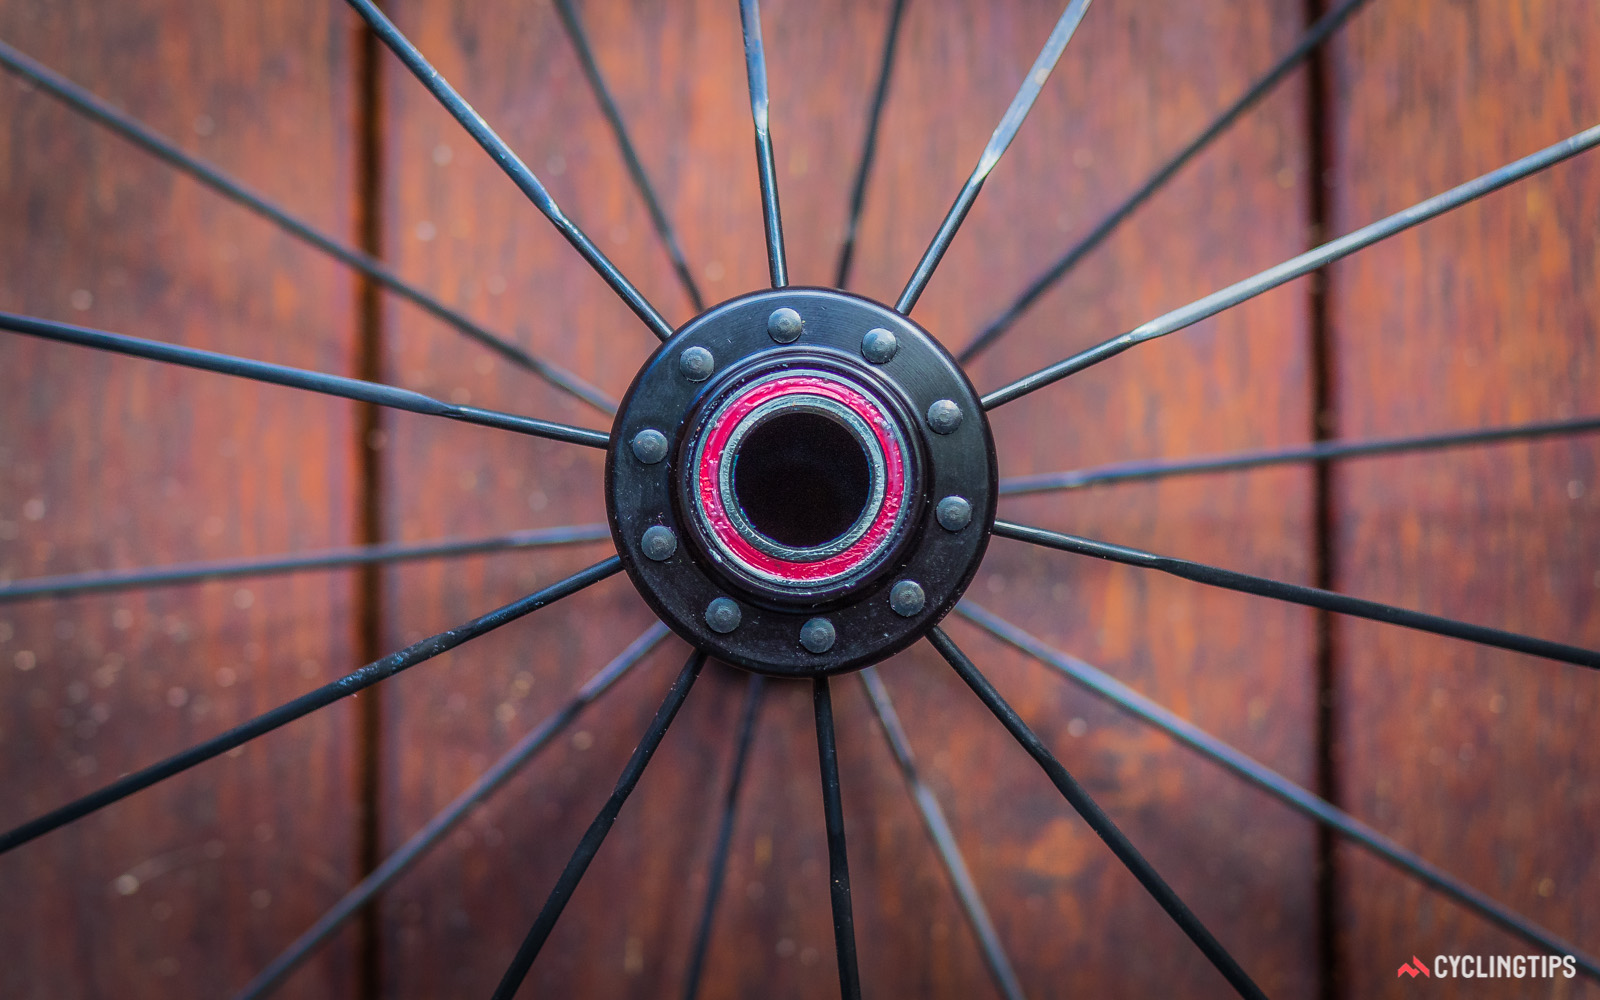 Radial lacing is used for the front hub with the spoke heads facing outwards.